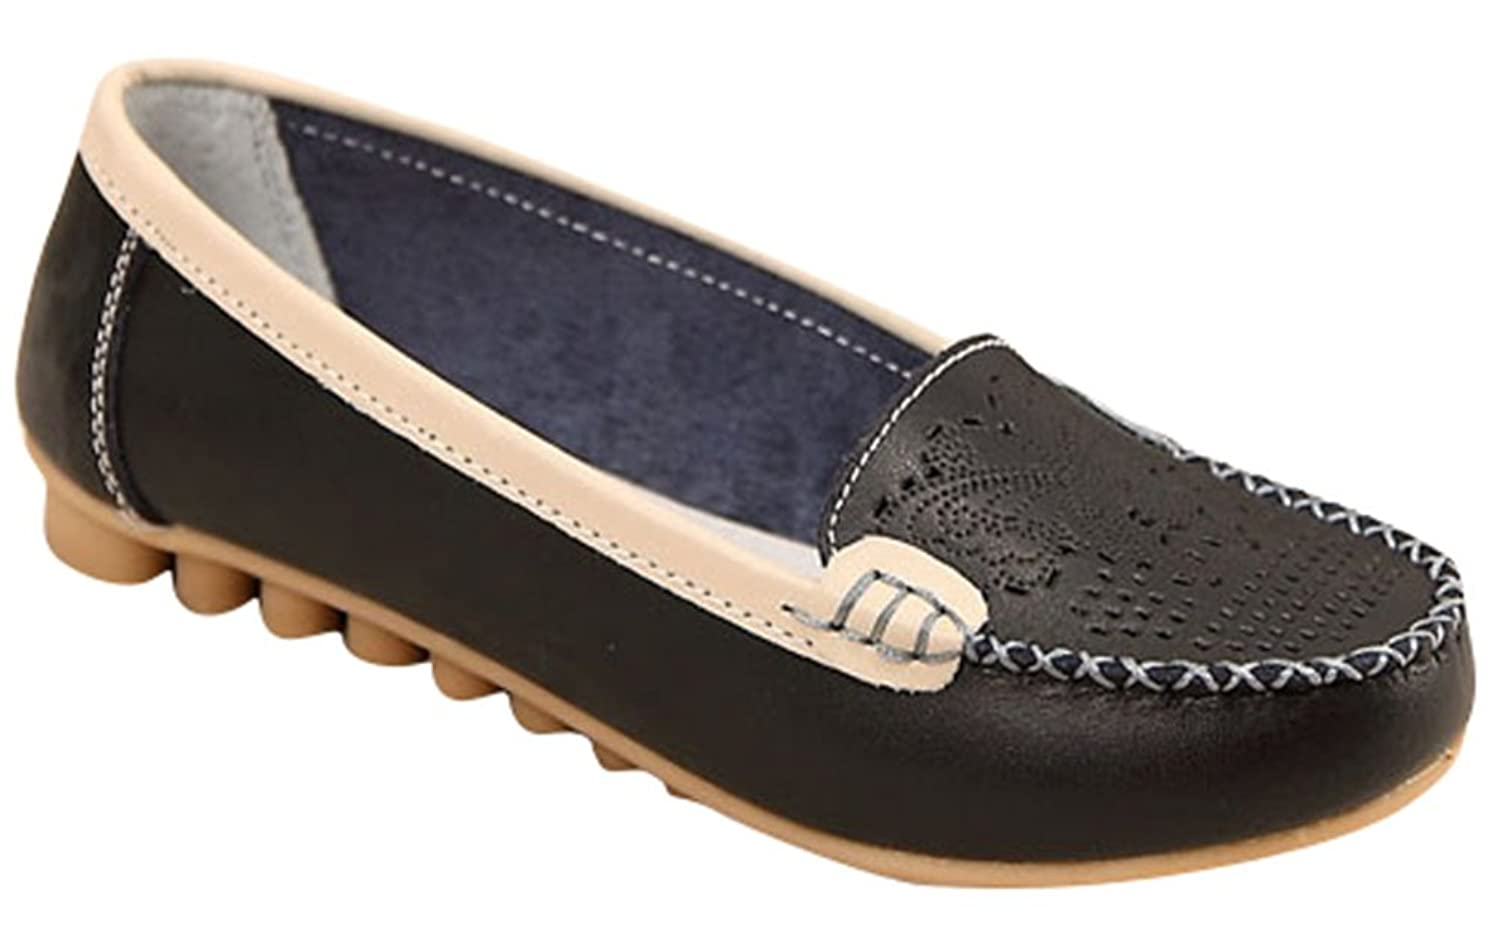 1c05e583356 best Ace Women s Fashion Casual Slip-on Dress Leather Loafer Flats Shoes